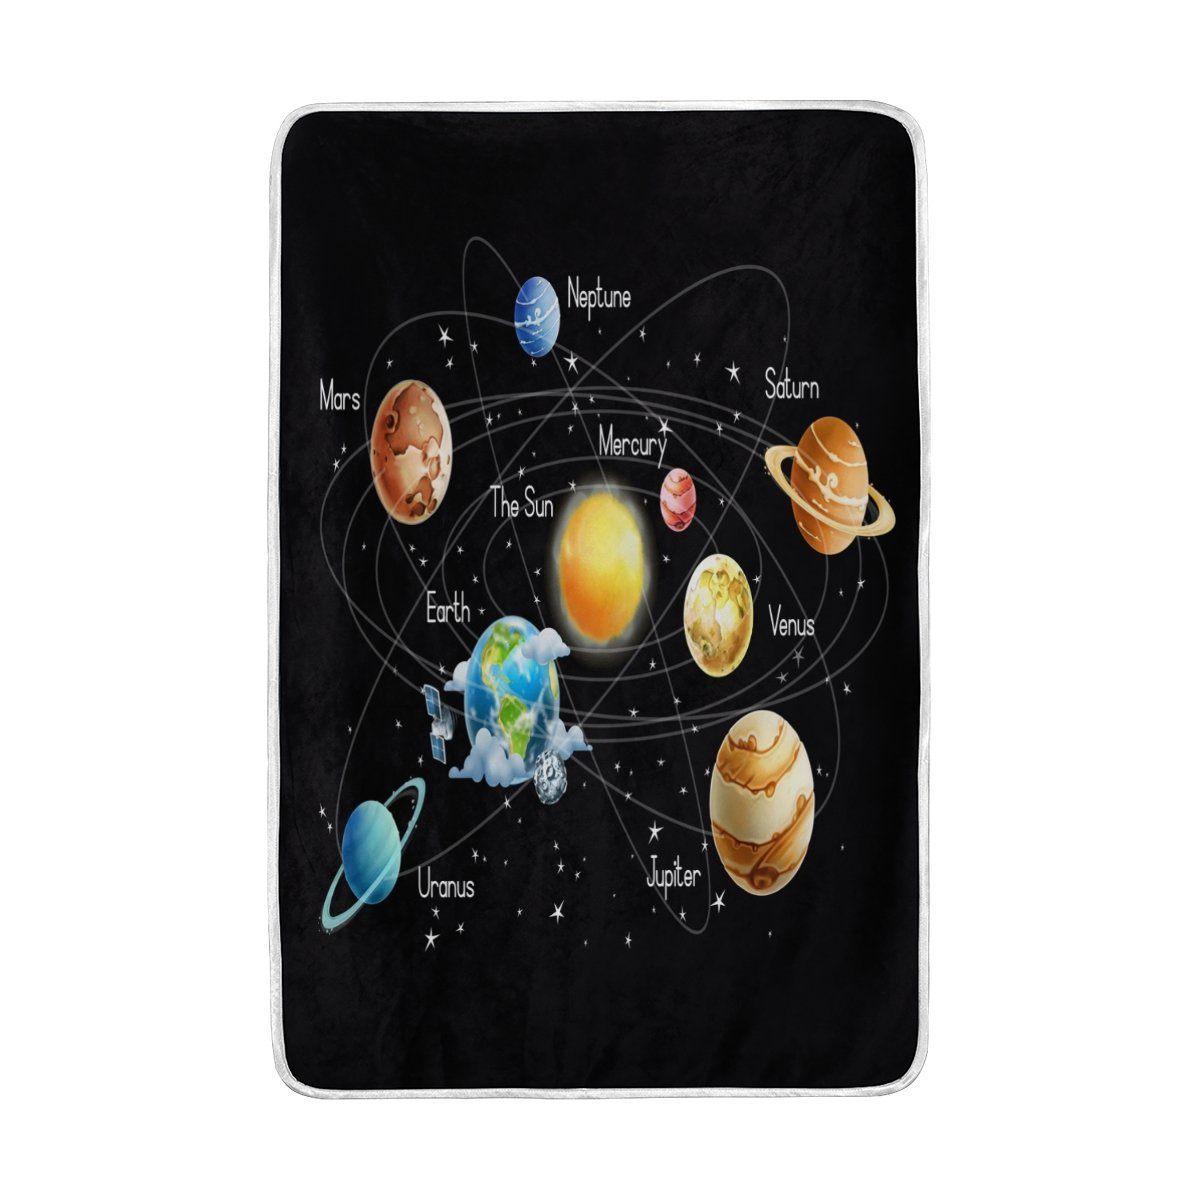 ALAZA Galaxy Solar System Blanket Lightweight Soft Warm Blanket Twin Size 60x90 inches for Bed Sofa Couch Office Home Decor